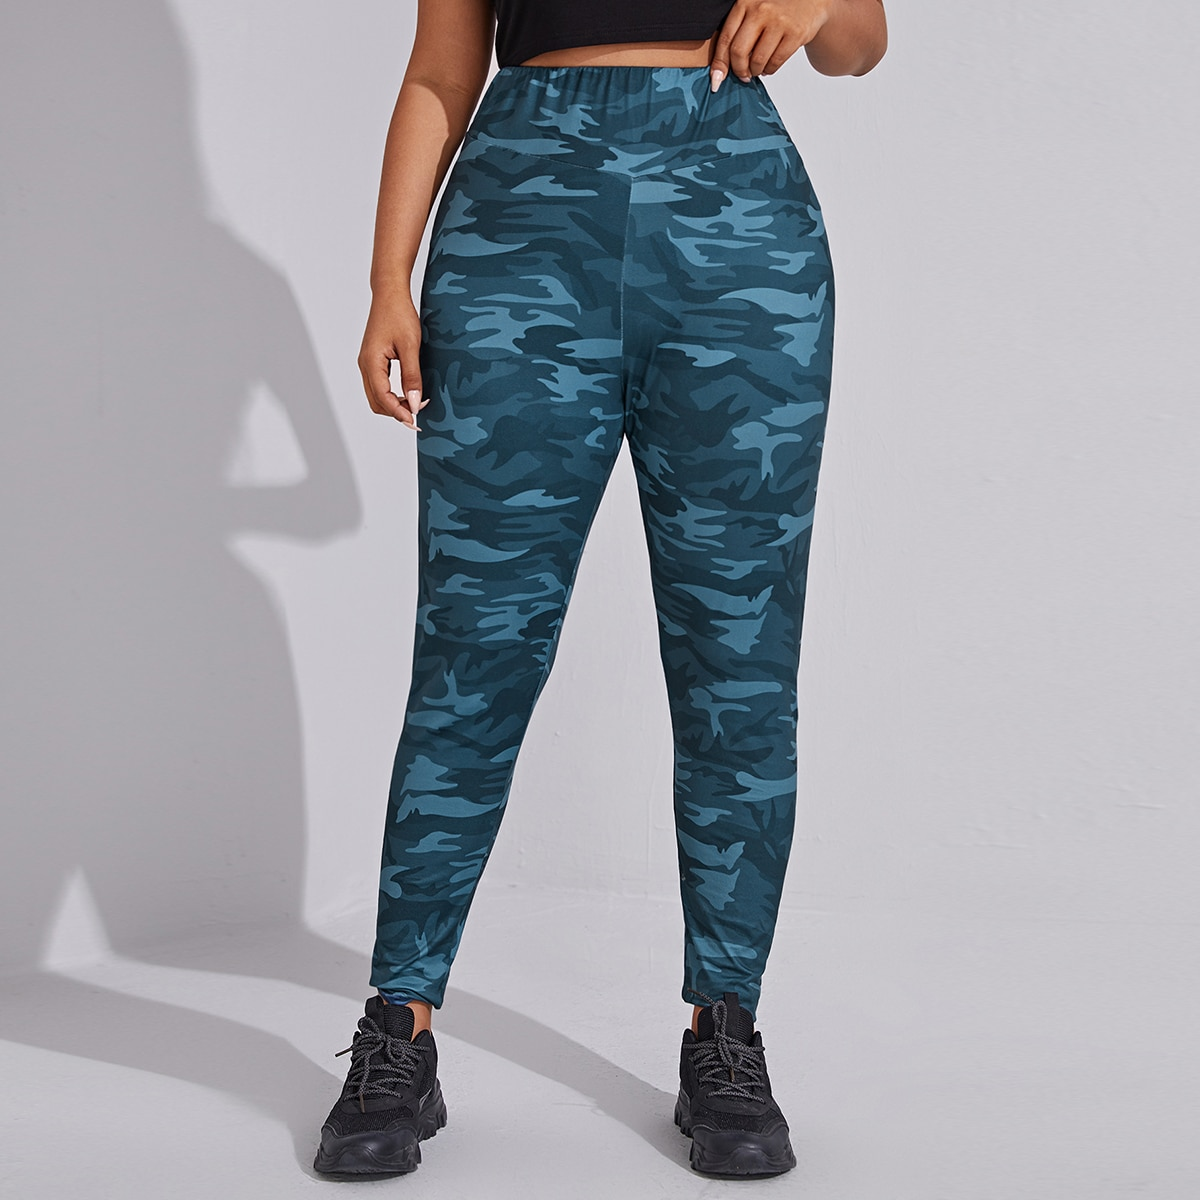 SHEIN Casual Camouflage Grote maat: legging